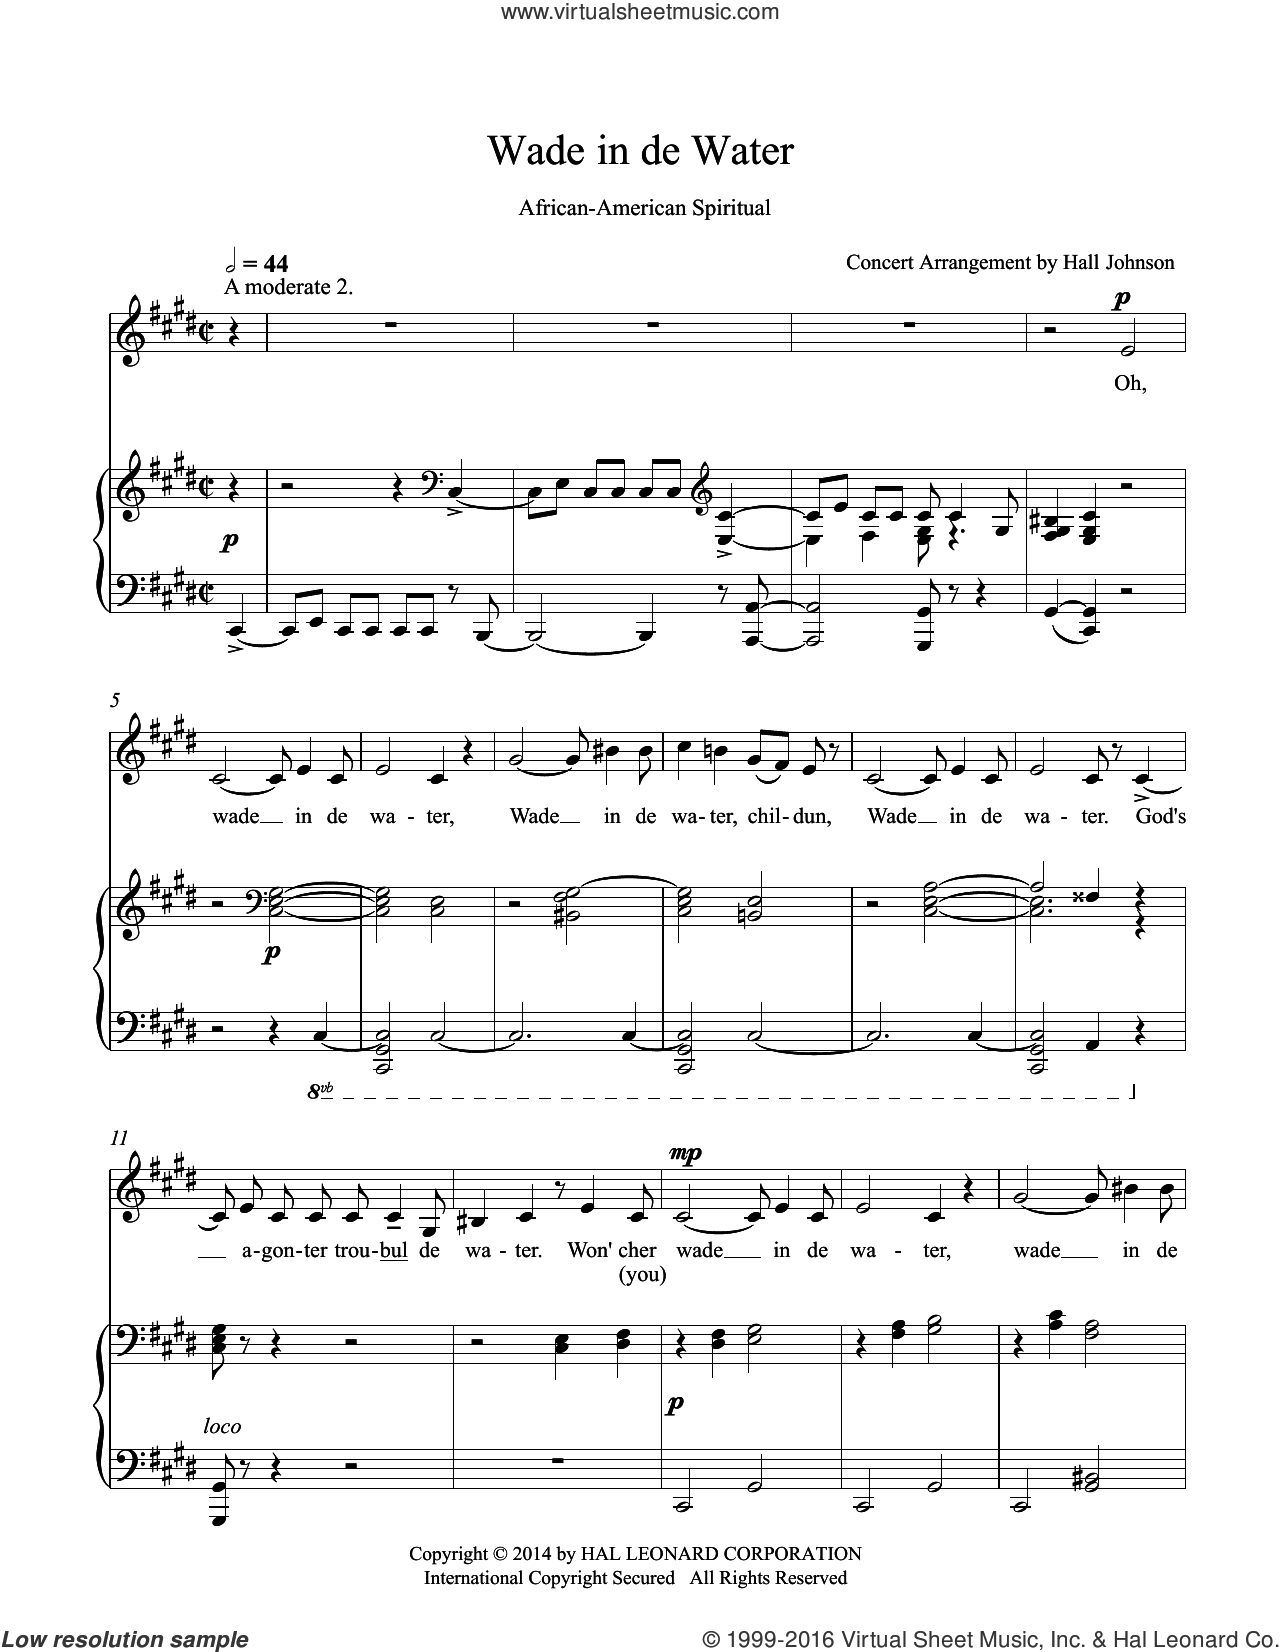 Wade in de Water (C-sharp minor) sheet music for voice and piano by Hall Johnson. Score Image Preview.